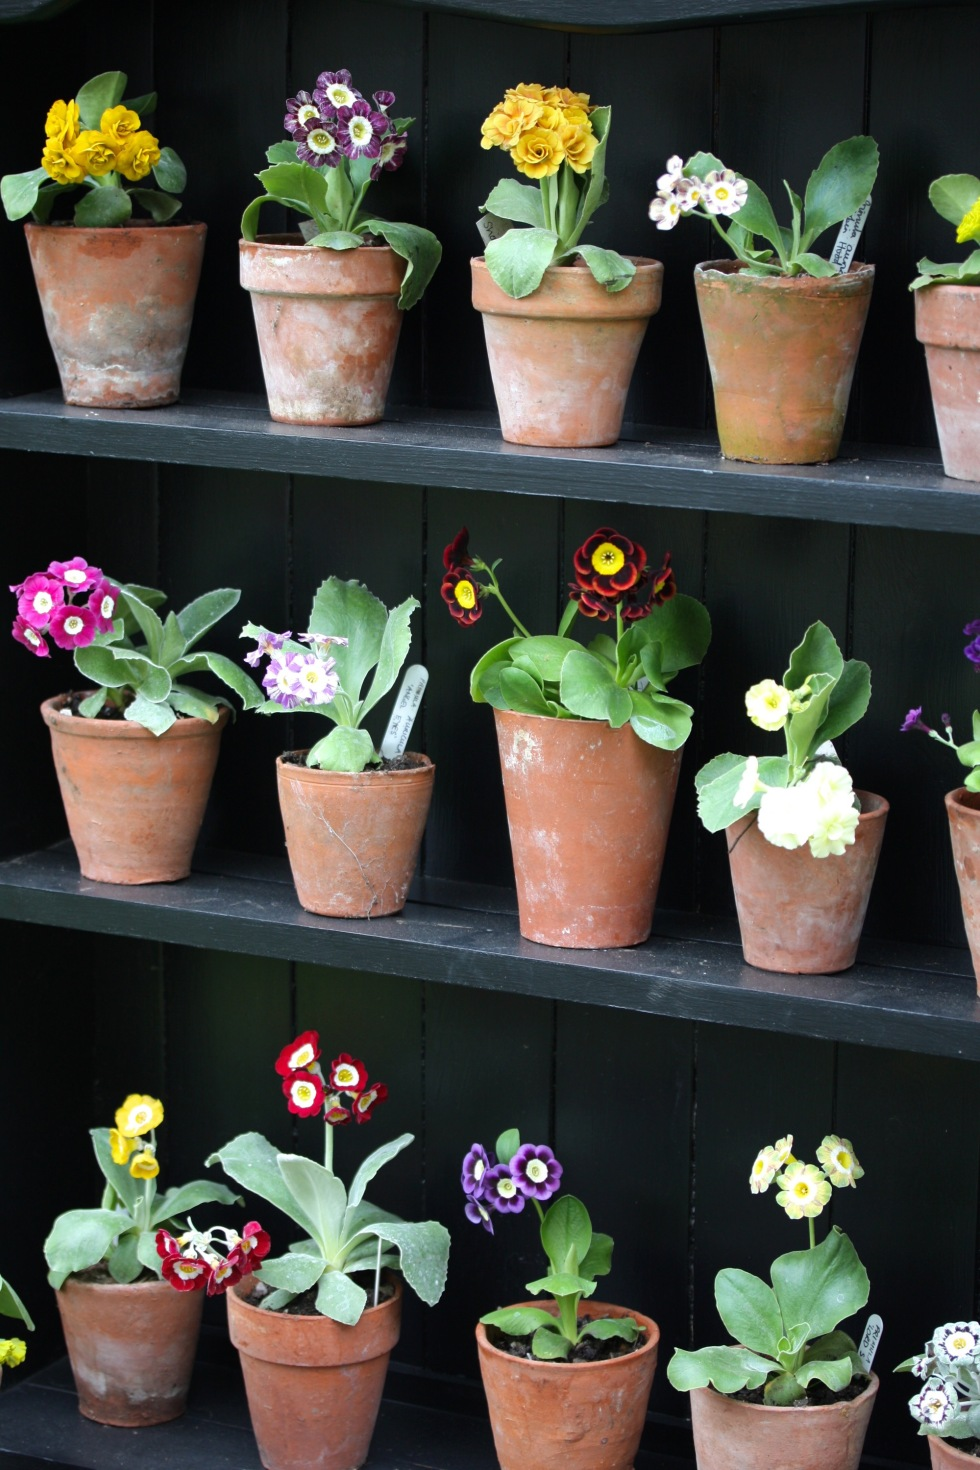 Auriculas - easier to look at than to grow